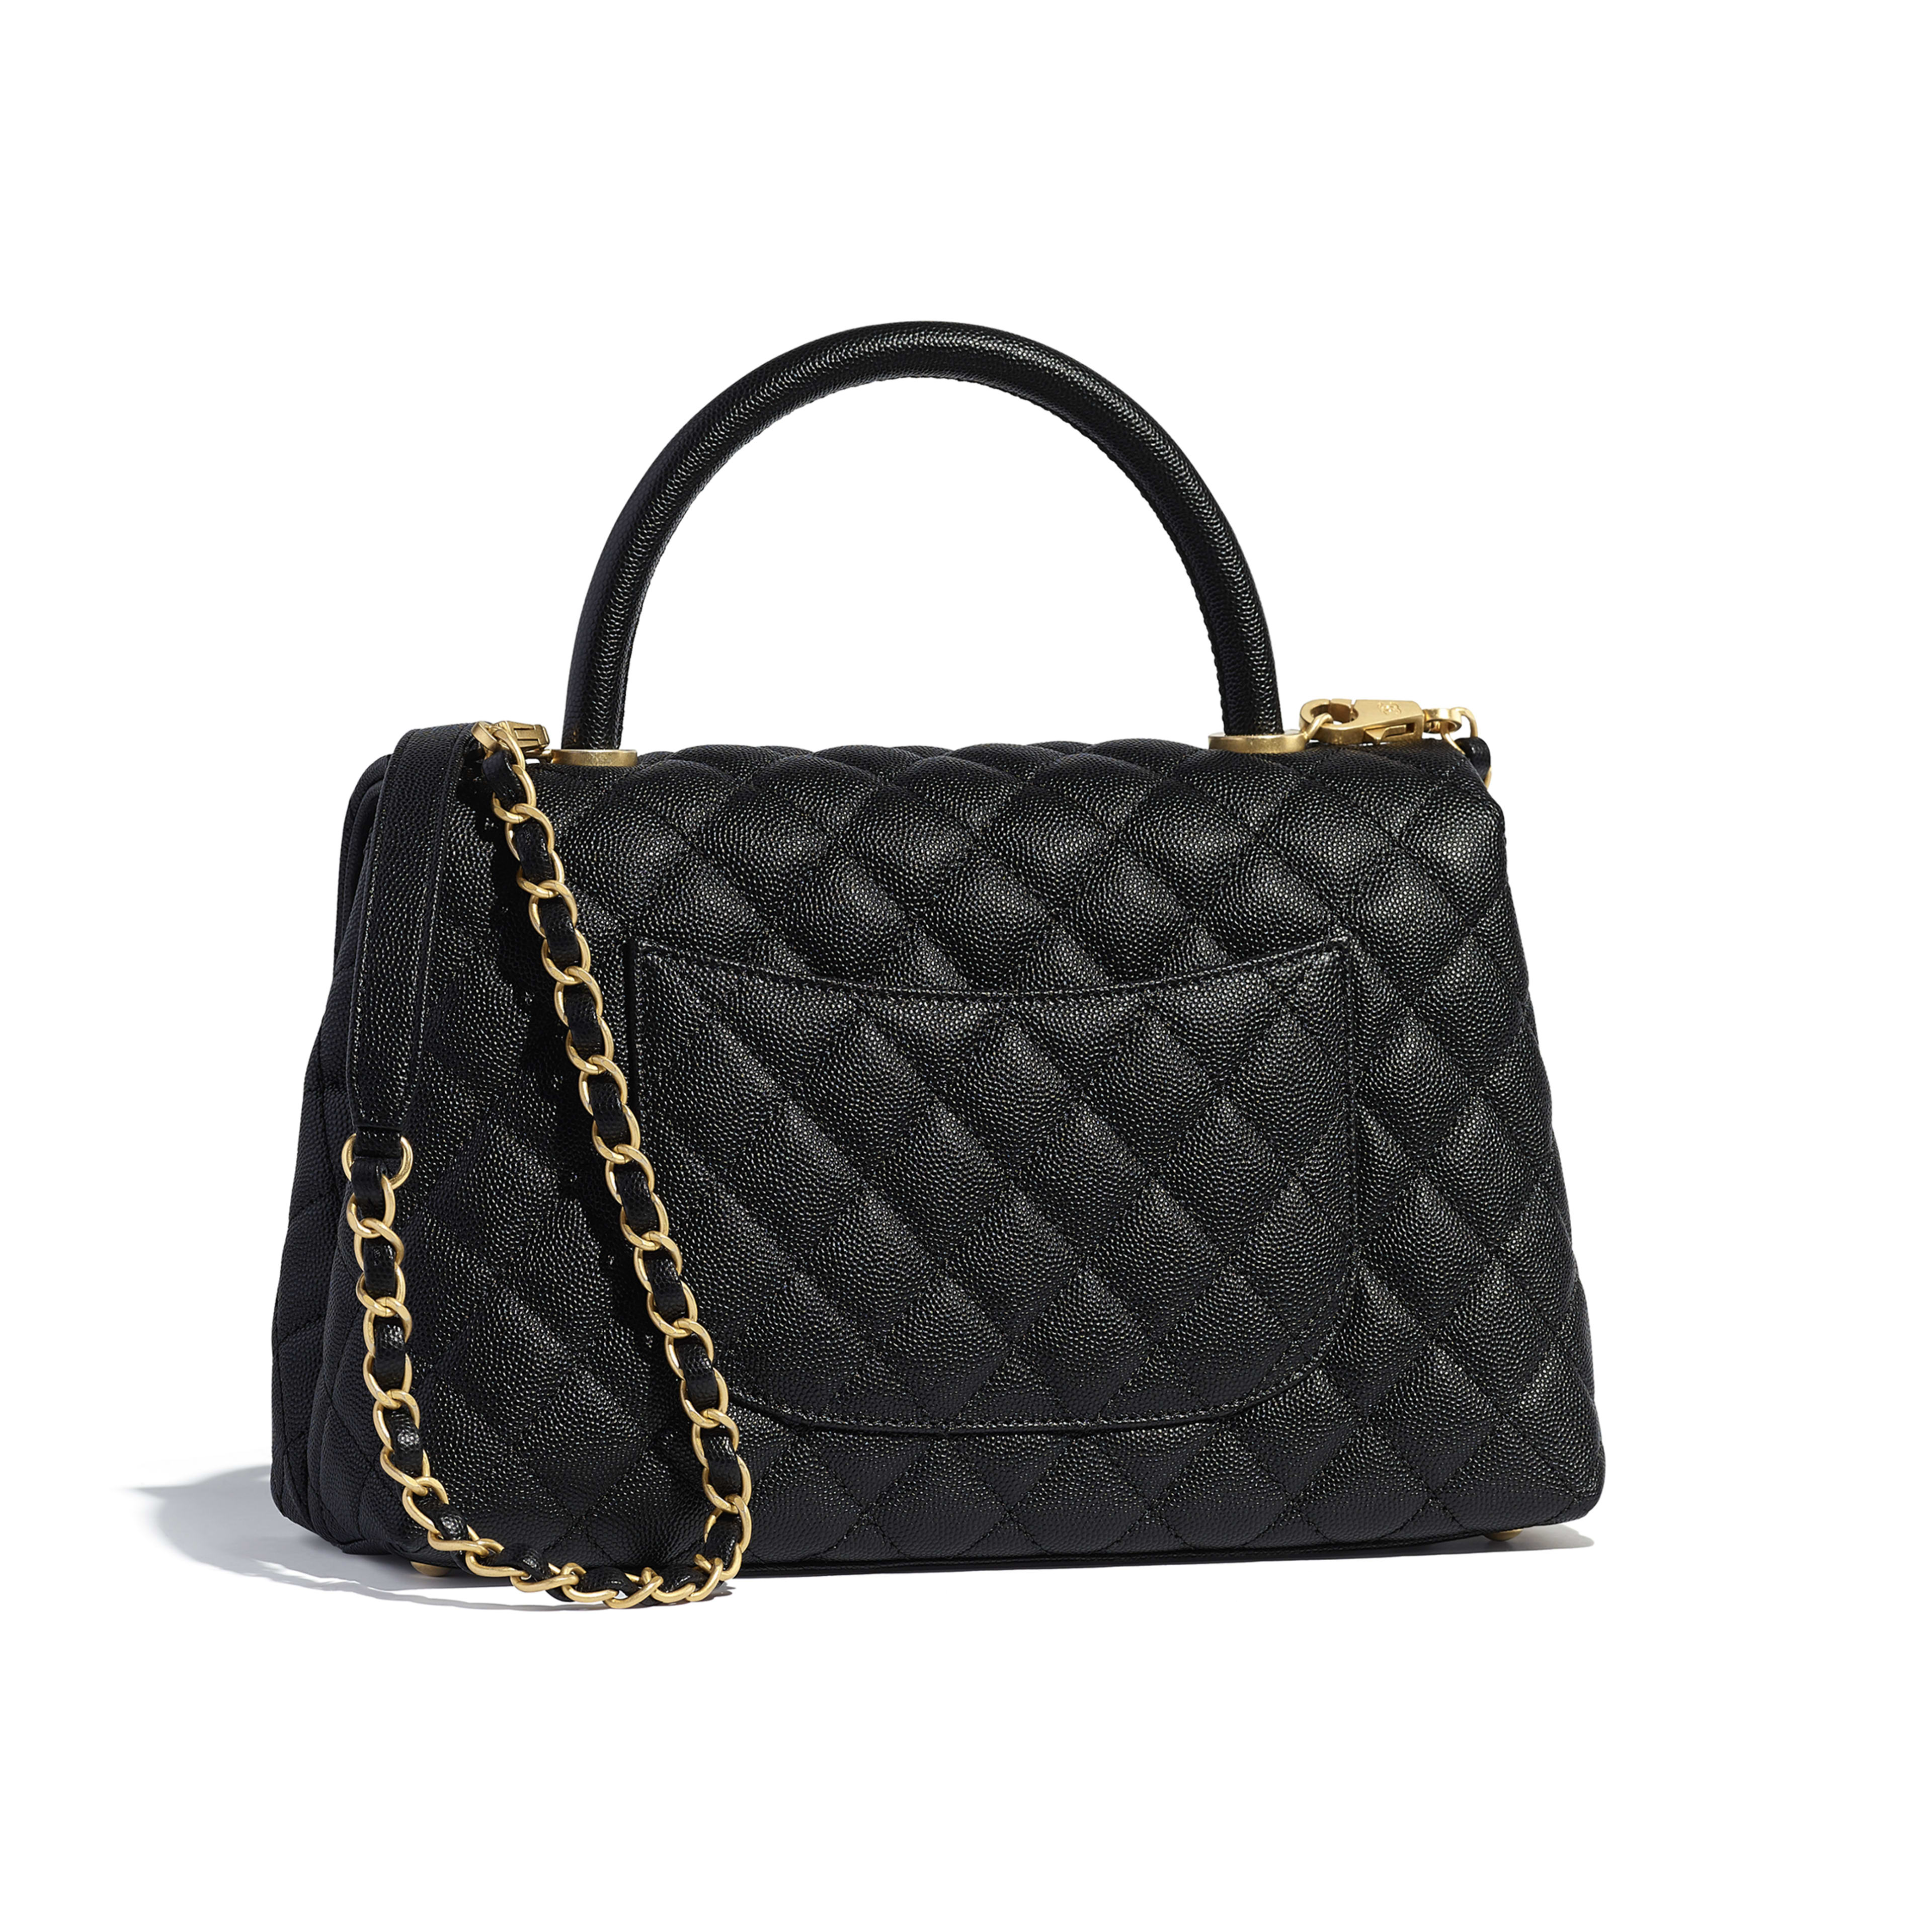 Flap Bag with Top Handle - Black - Grained Calfskin & Gold-Tone Metal - Alternative view - see full sized version